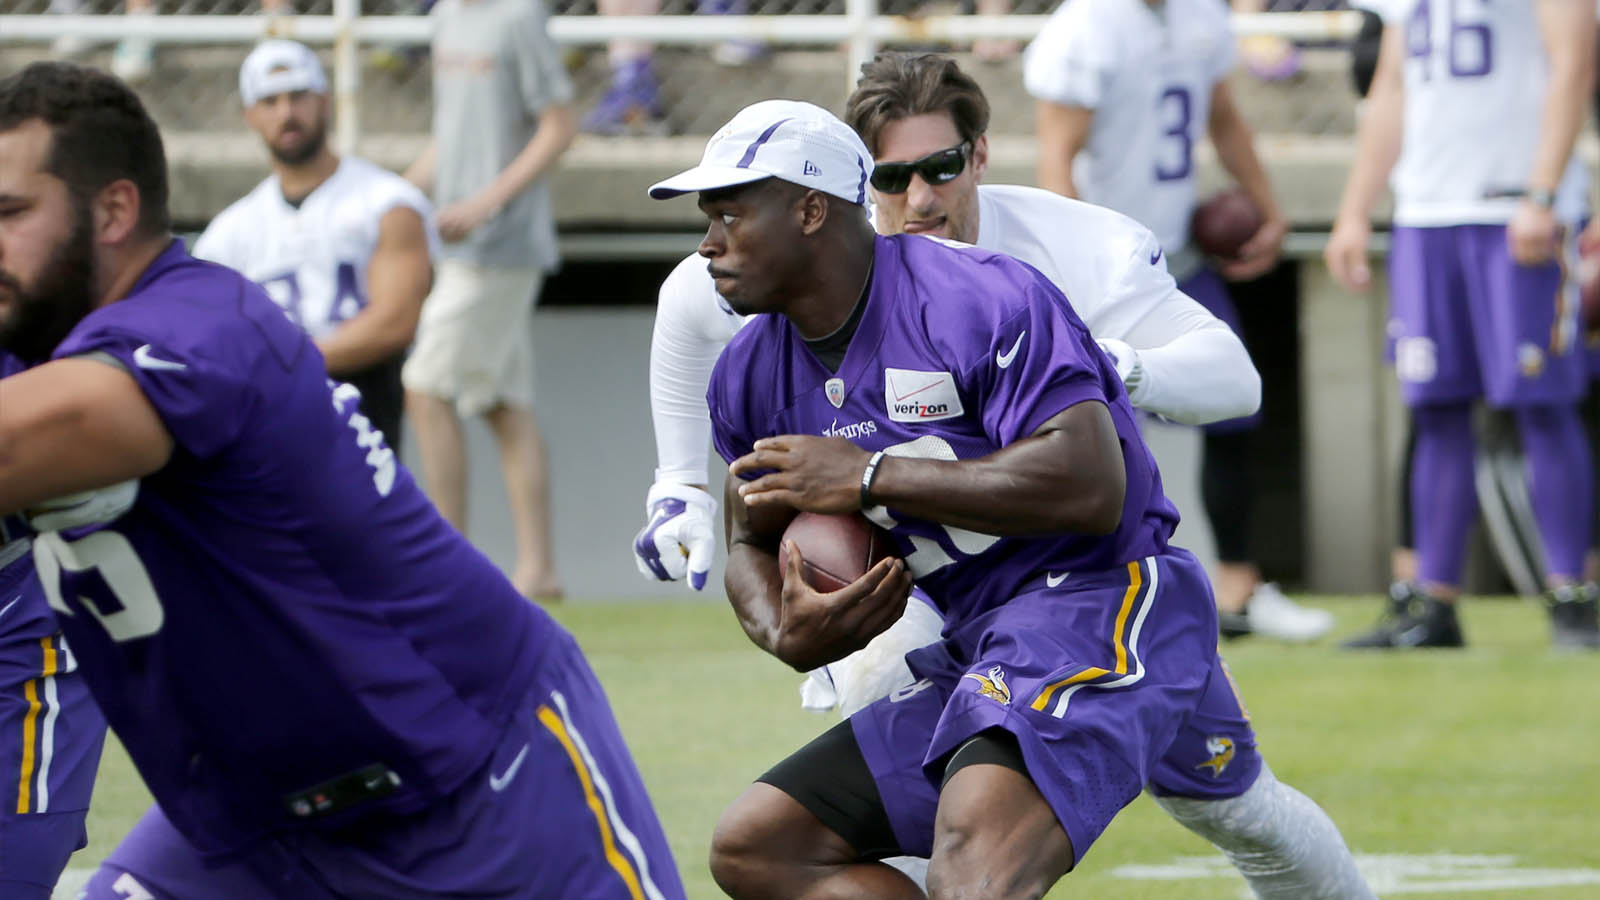 Vikings' Peterson banged up in practice, limps off field